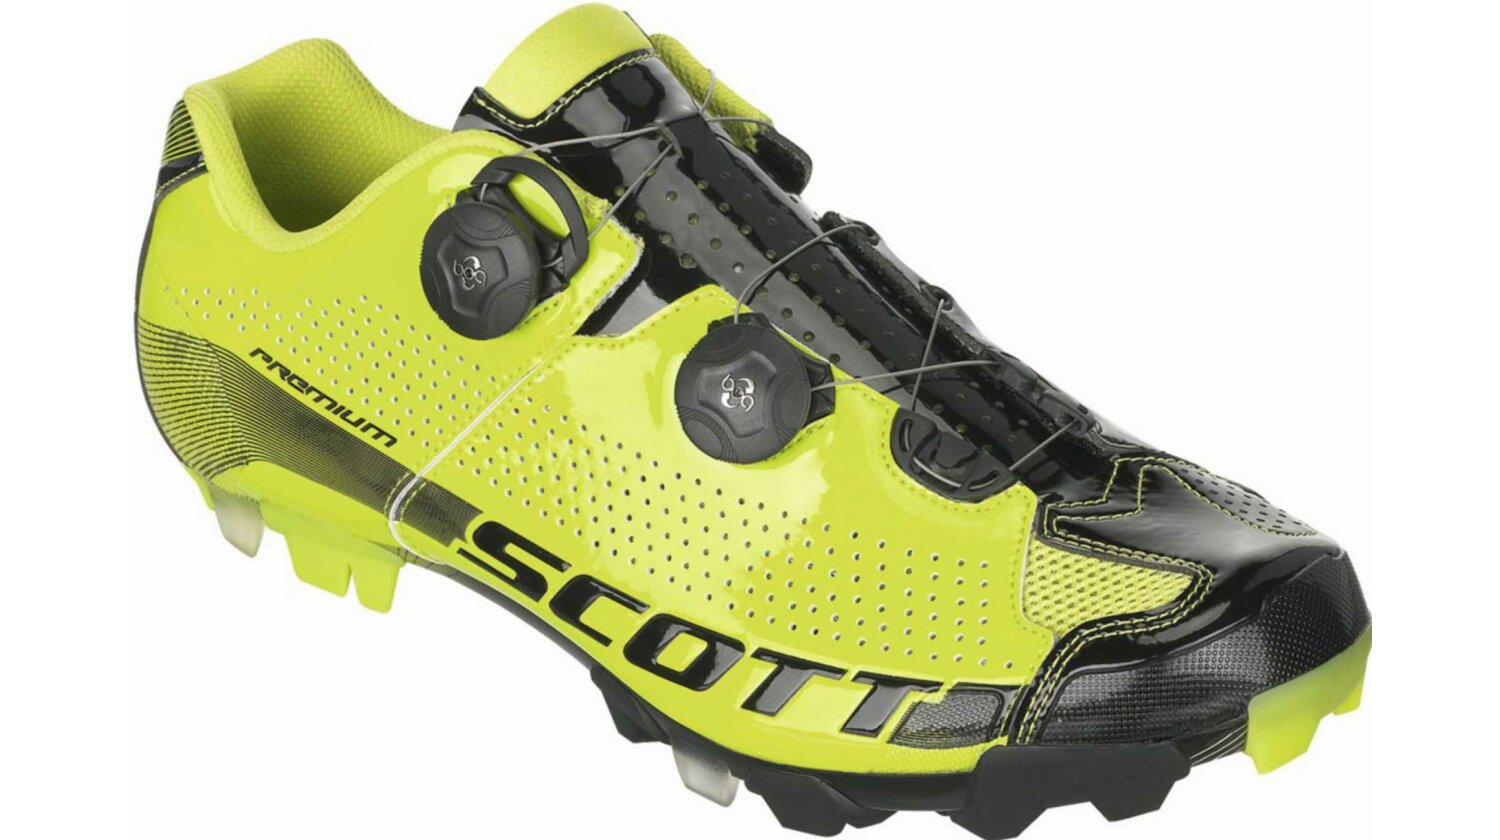 Scott MTB Premium Schuh green/black gloss 43